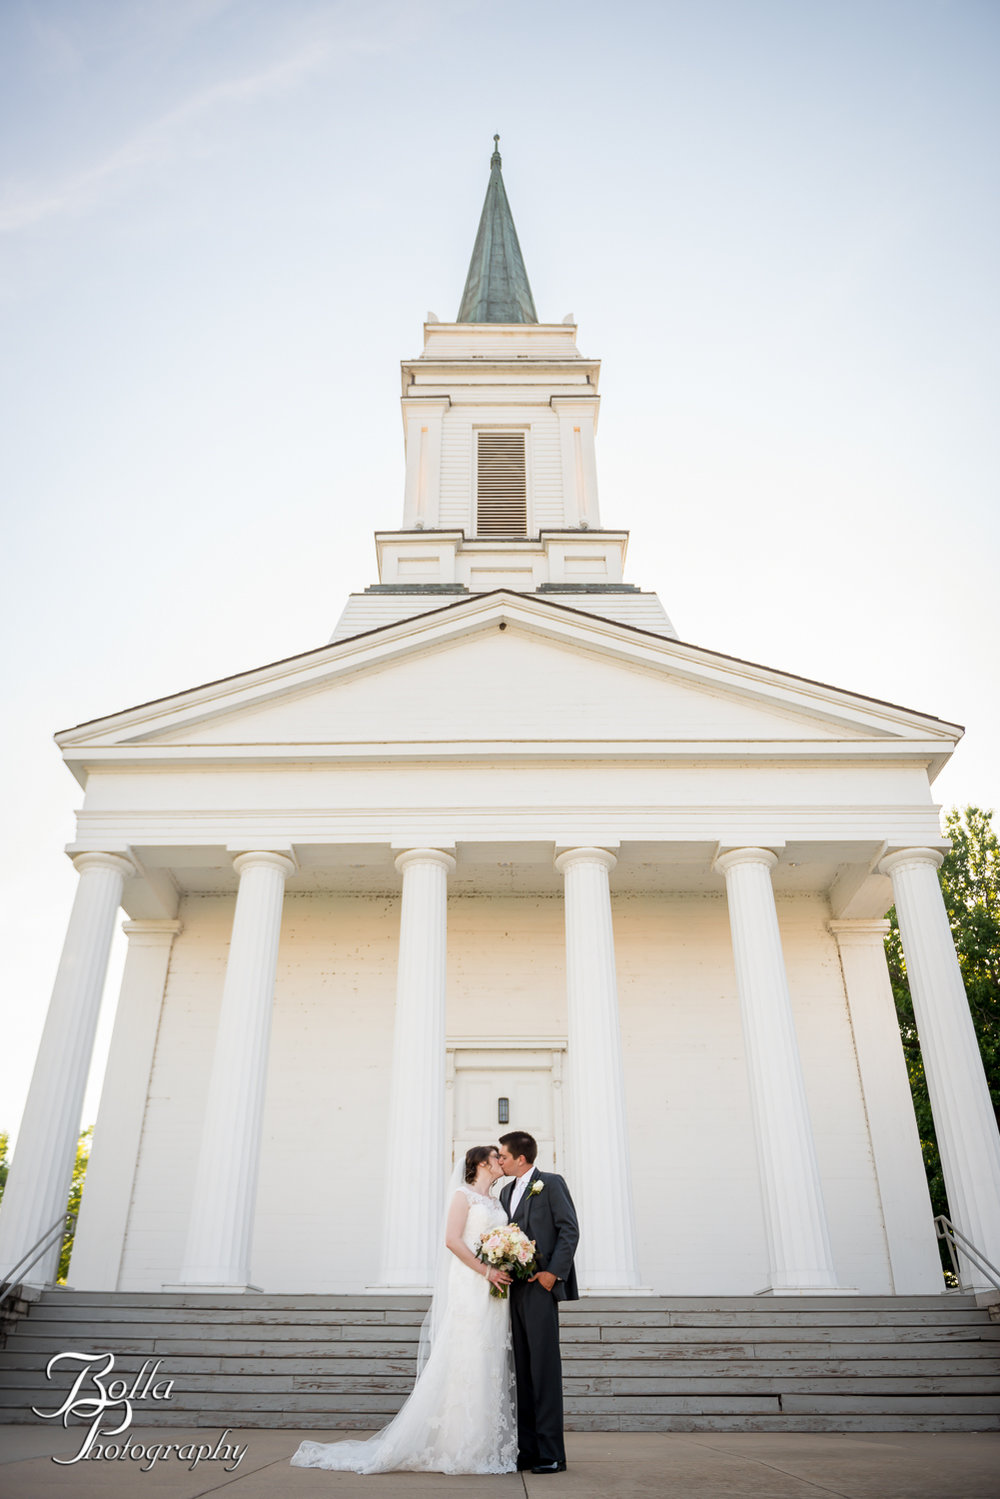 Bolla_Photography_St_Louis_wedding_photographer_Alton_IL__Baptist_Church-0389.jpg